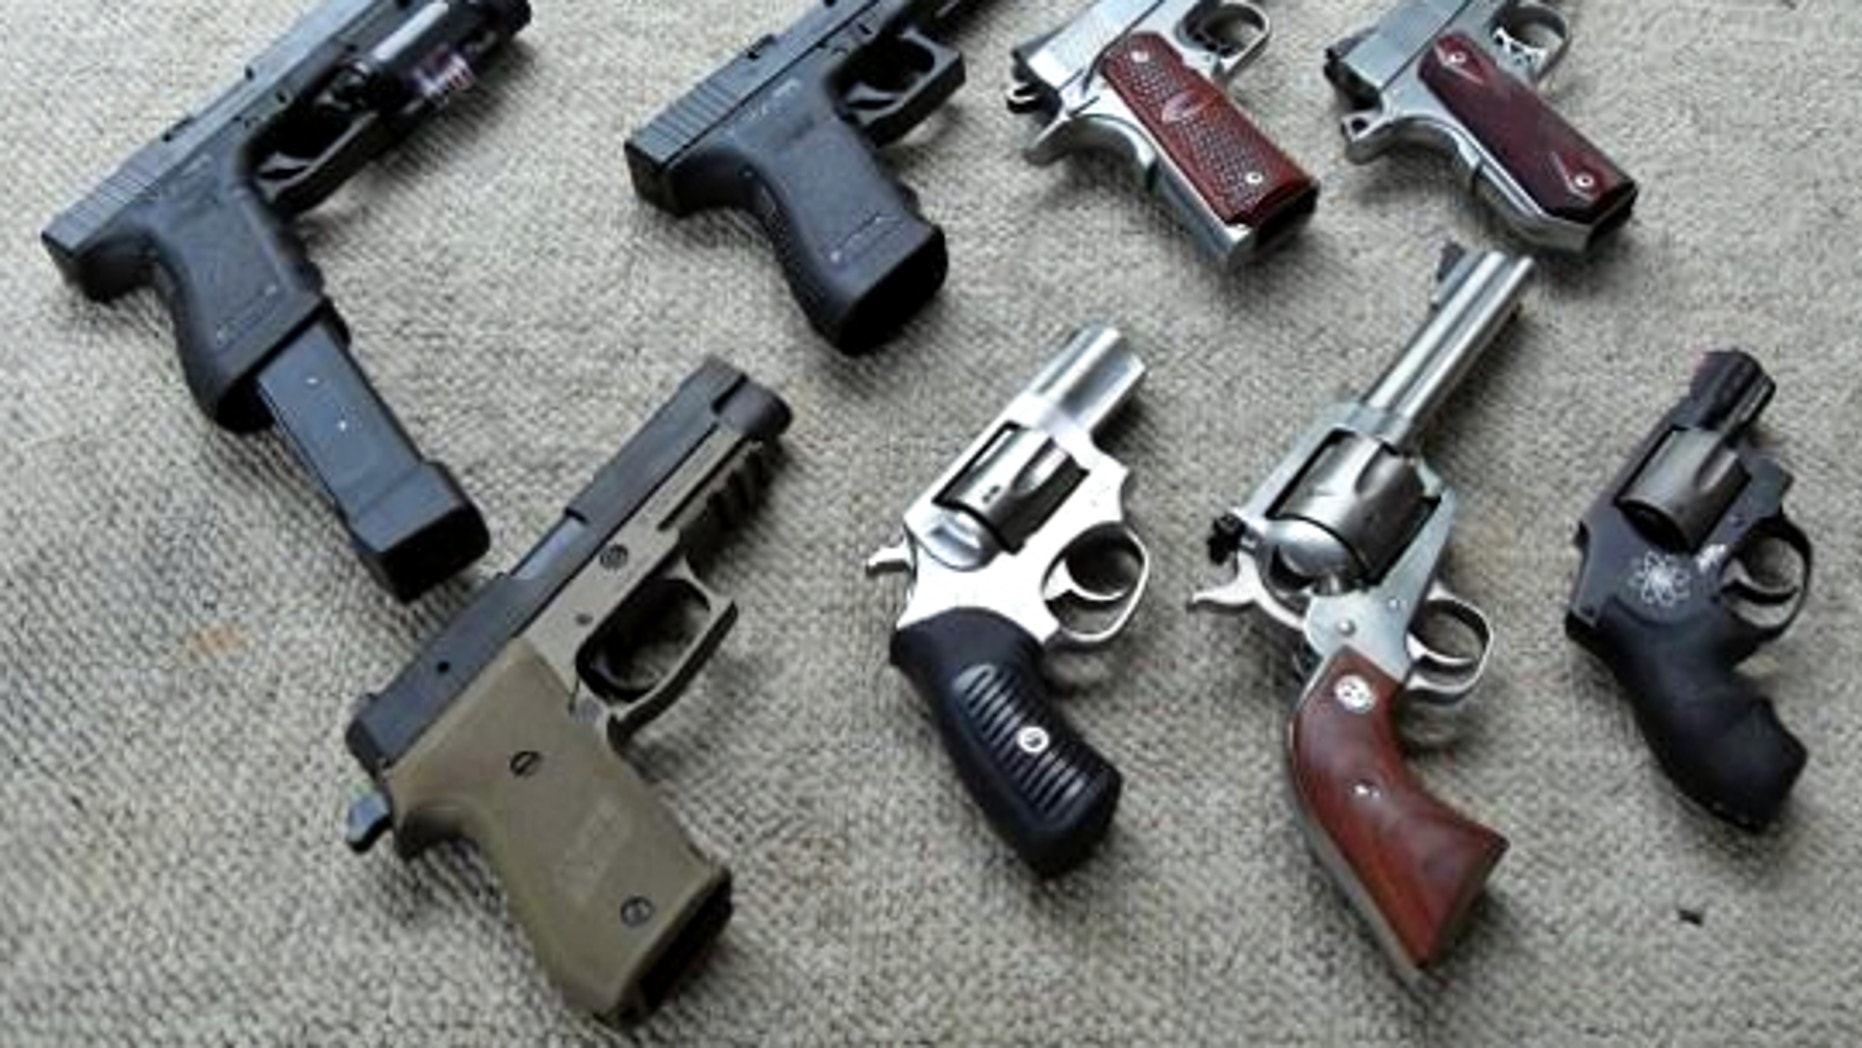 Semiautomatic handguns and revolvers